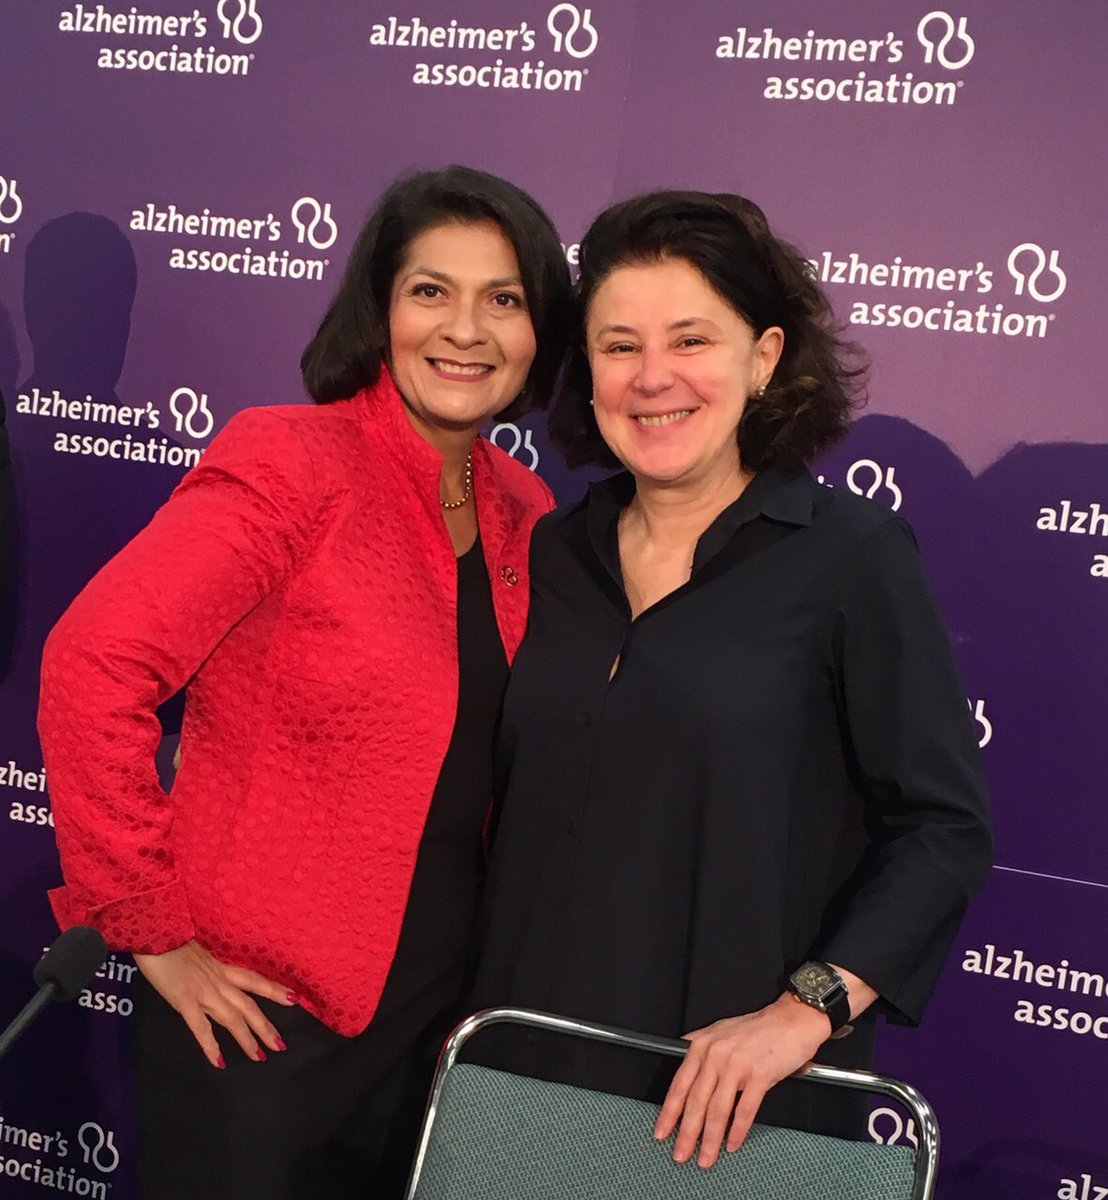 Dr. Suzana Petanceska @Alzheimers_NIH shared @AMPADPortal info with @DrMariaALZ at this morning's press briefing. #AAIC19<br>http://pic.twitter.com/VrldME2AEm